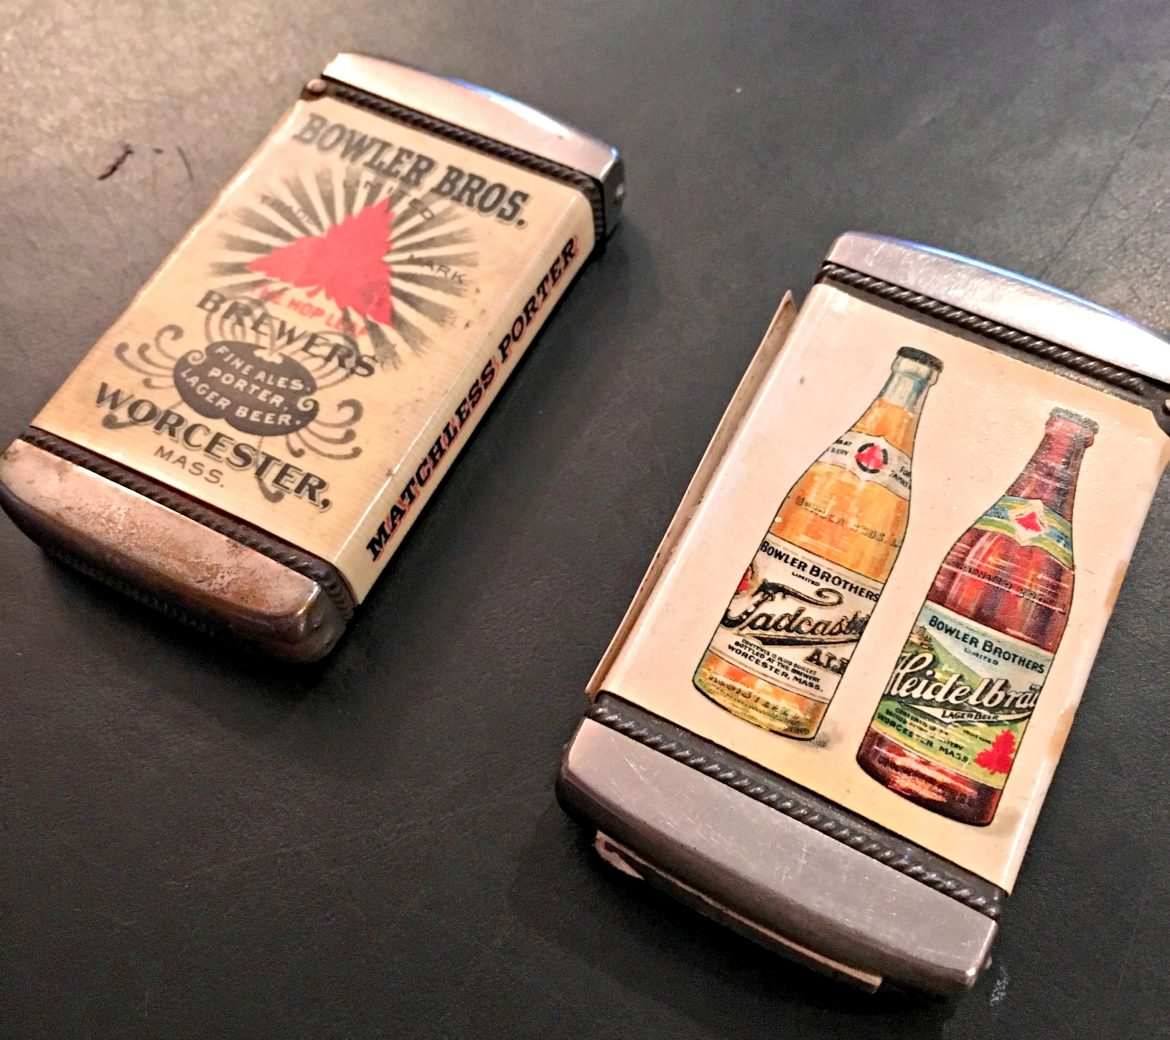 Bowler Brothers promotional lighters (from the collection at Worcester Historical Museum).